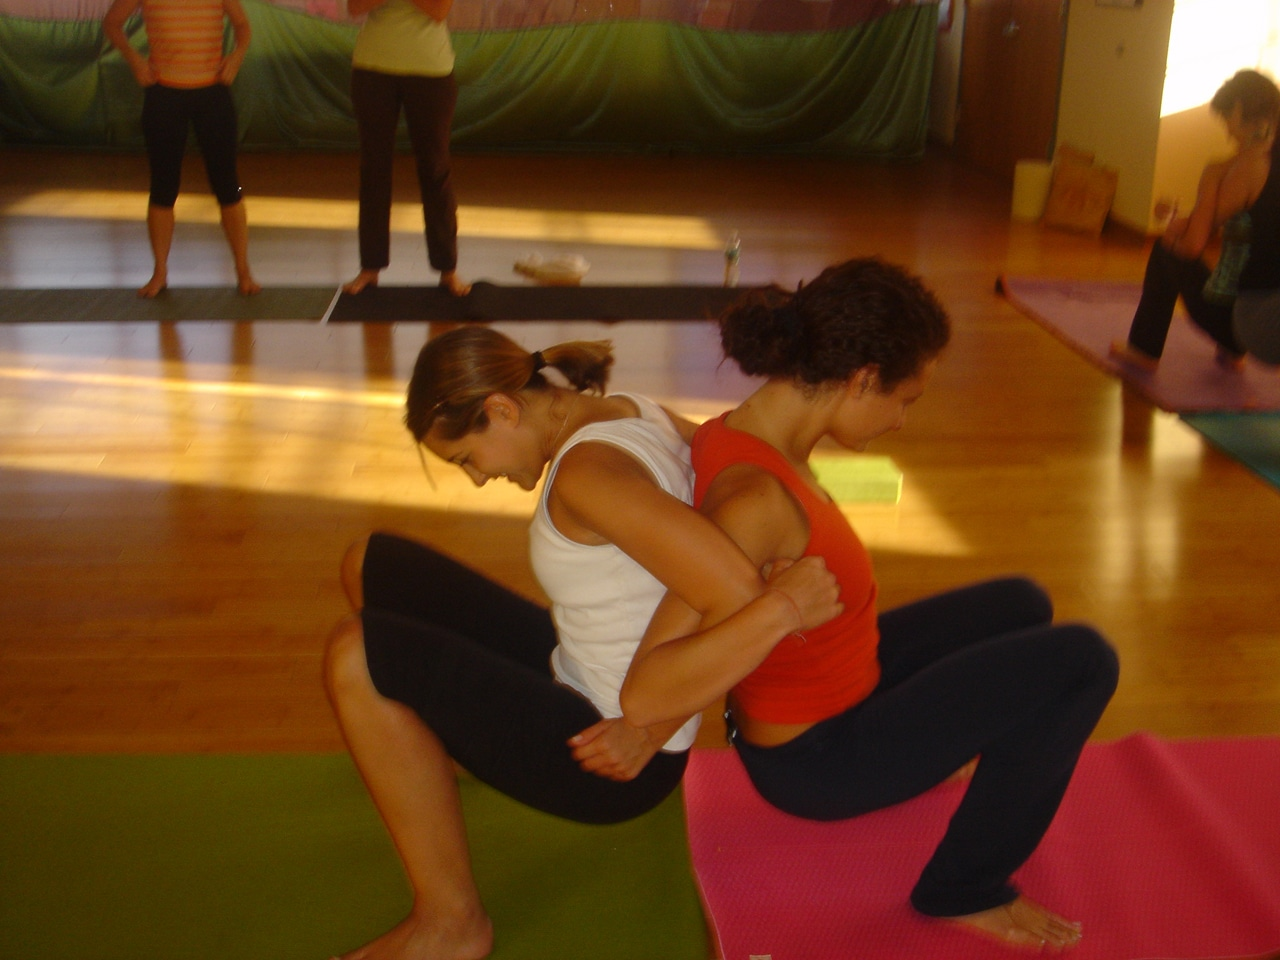 PARTNER YOGA | Rina Yoga, Inc.: www.rinayoga.com/press/gallery/workshops/partner-yoga